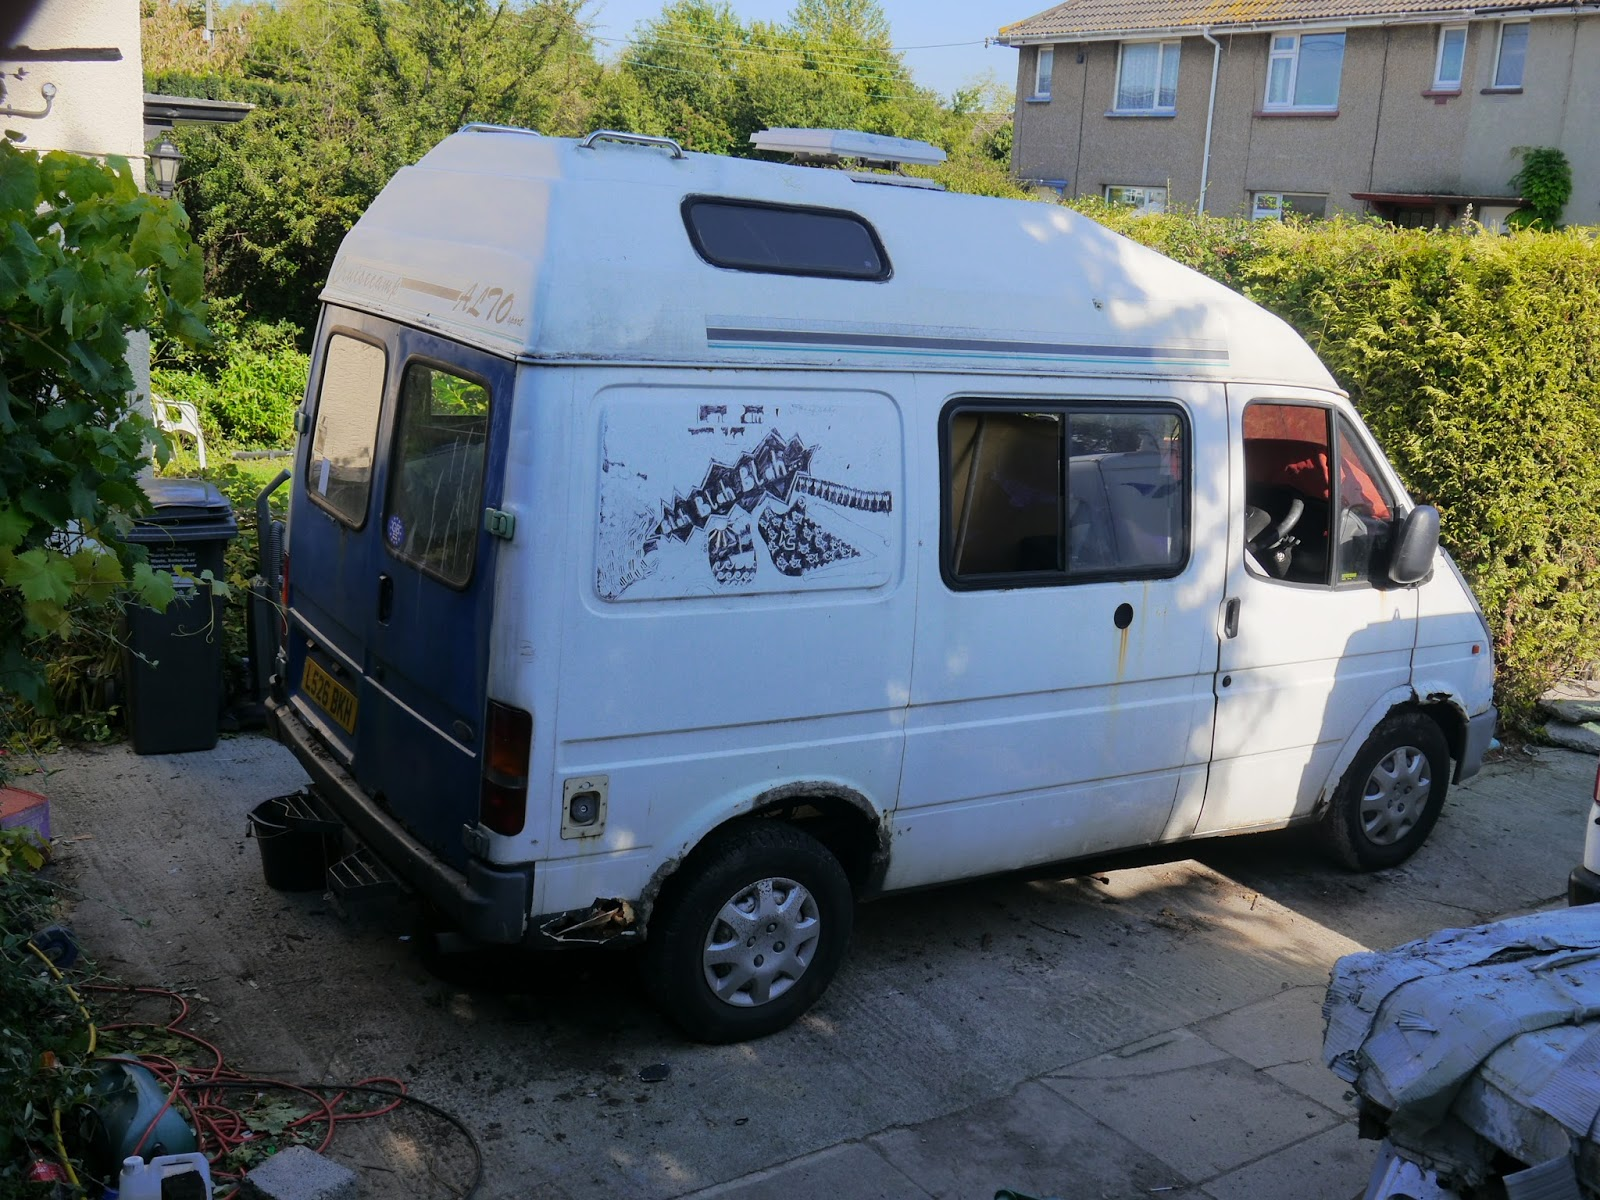 Follow Me Along My Journey As I Restore An Old Ford Transit Camper Back To Working Condition And Design A New Interior For It